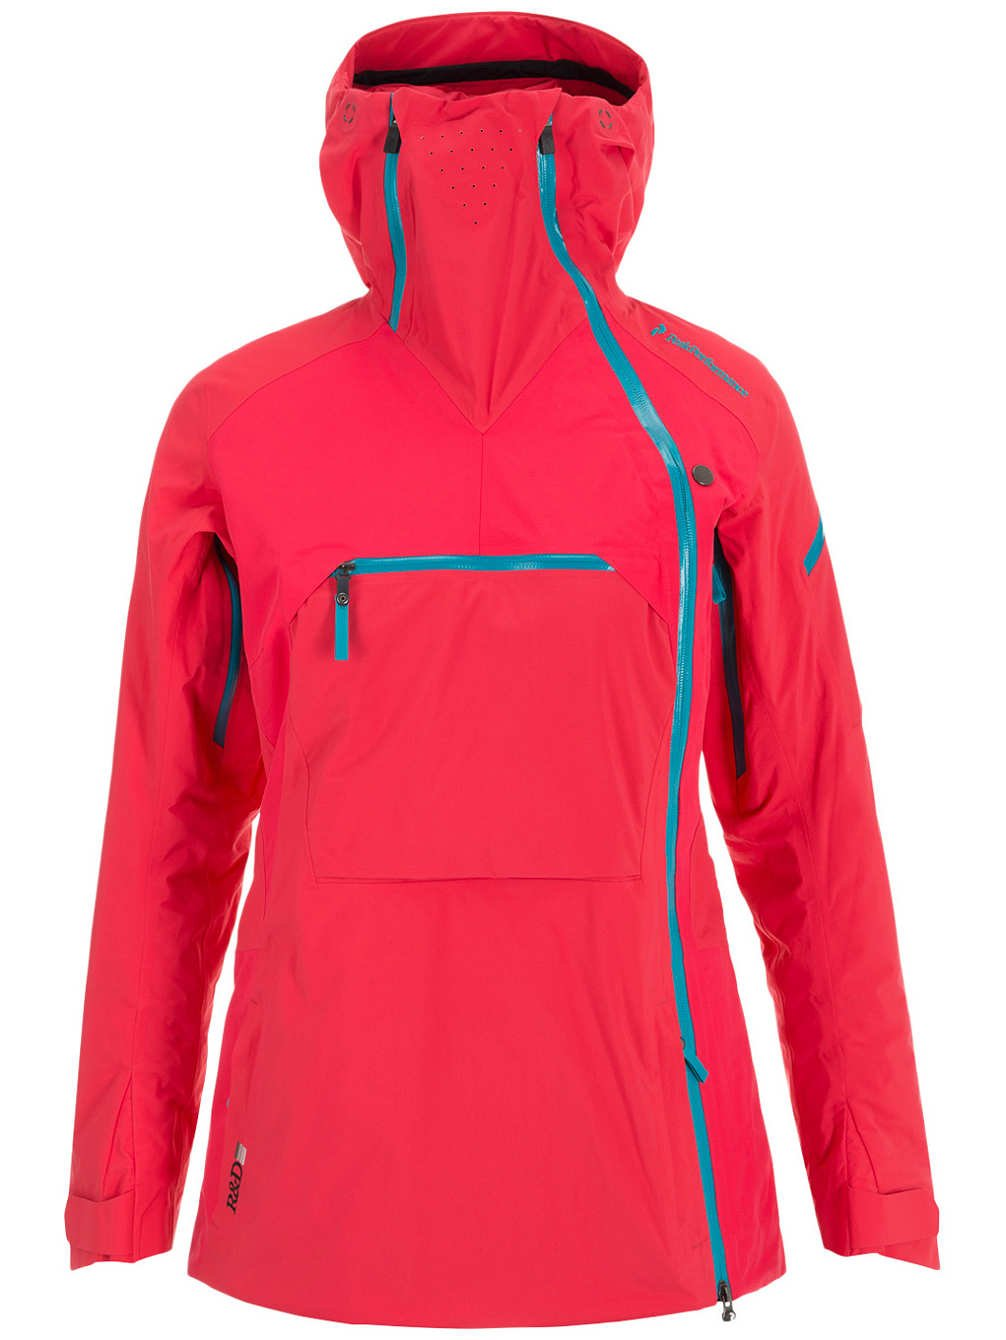 Damen Snowboard Jacke Peak Performance Heli 2Layer Vertical Jacket